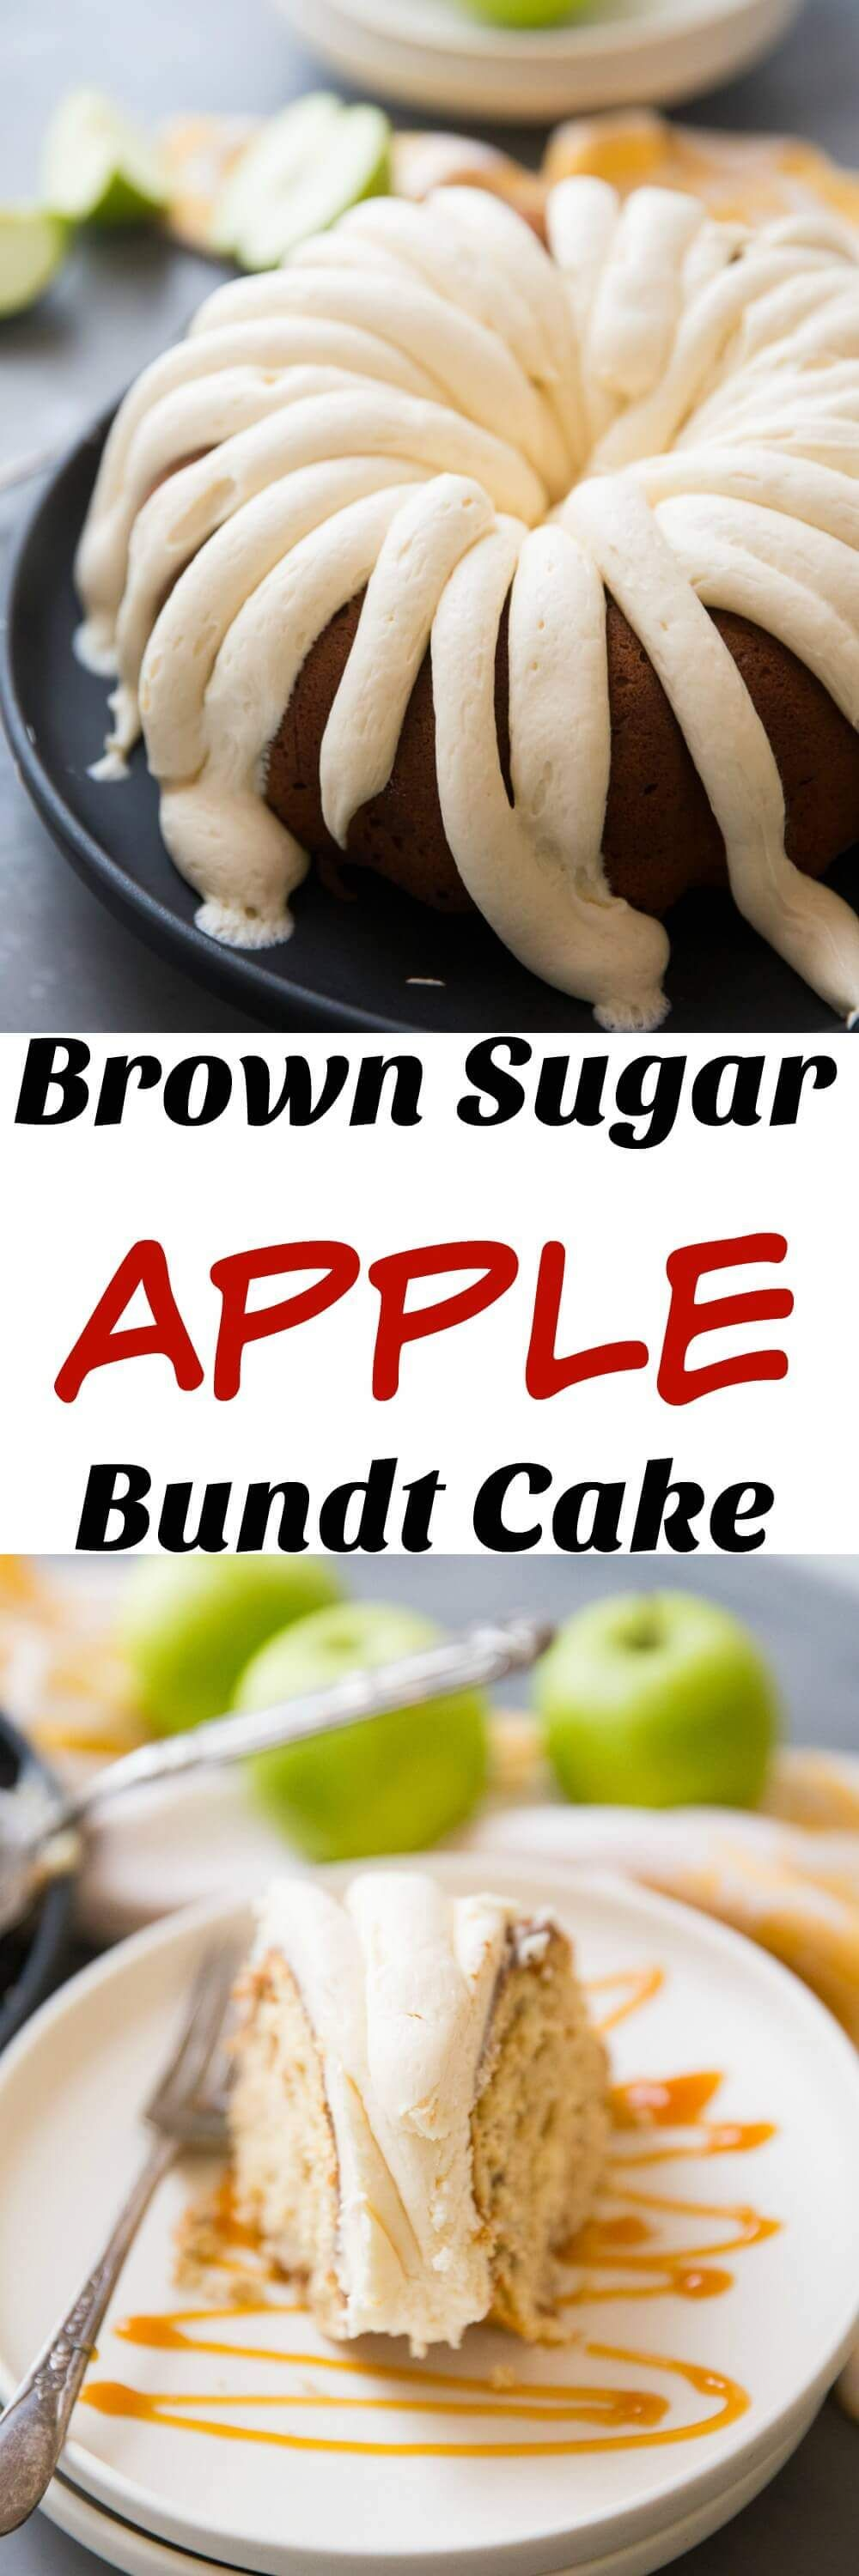 Brown Sugar Apple Bundt Cake